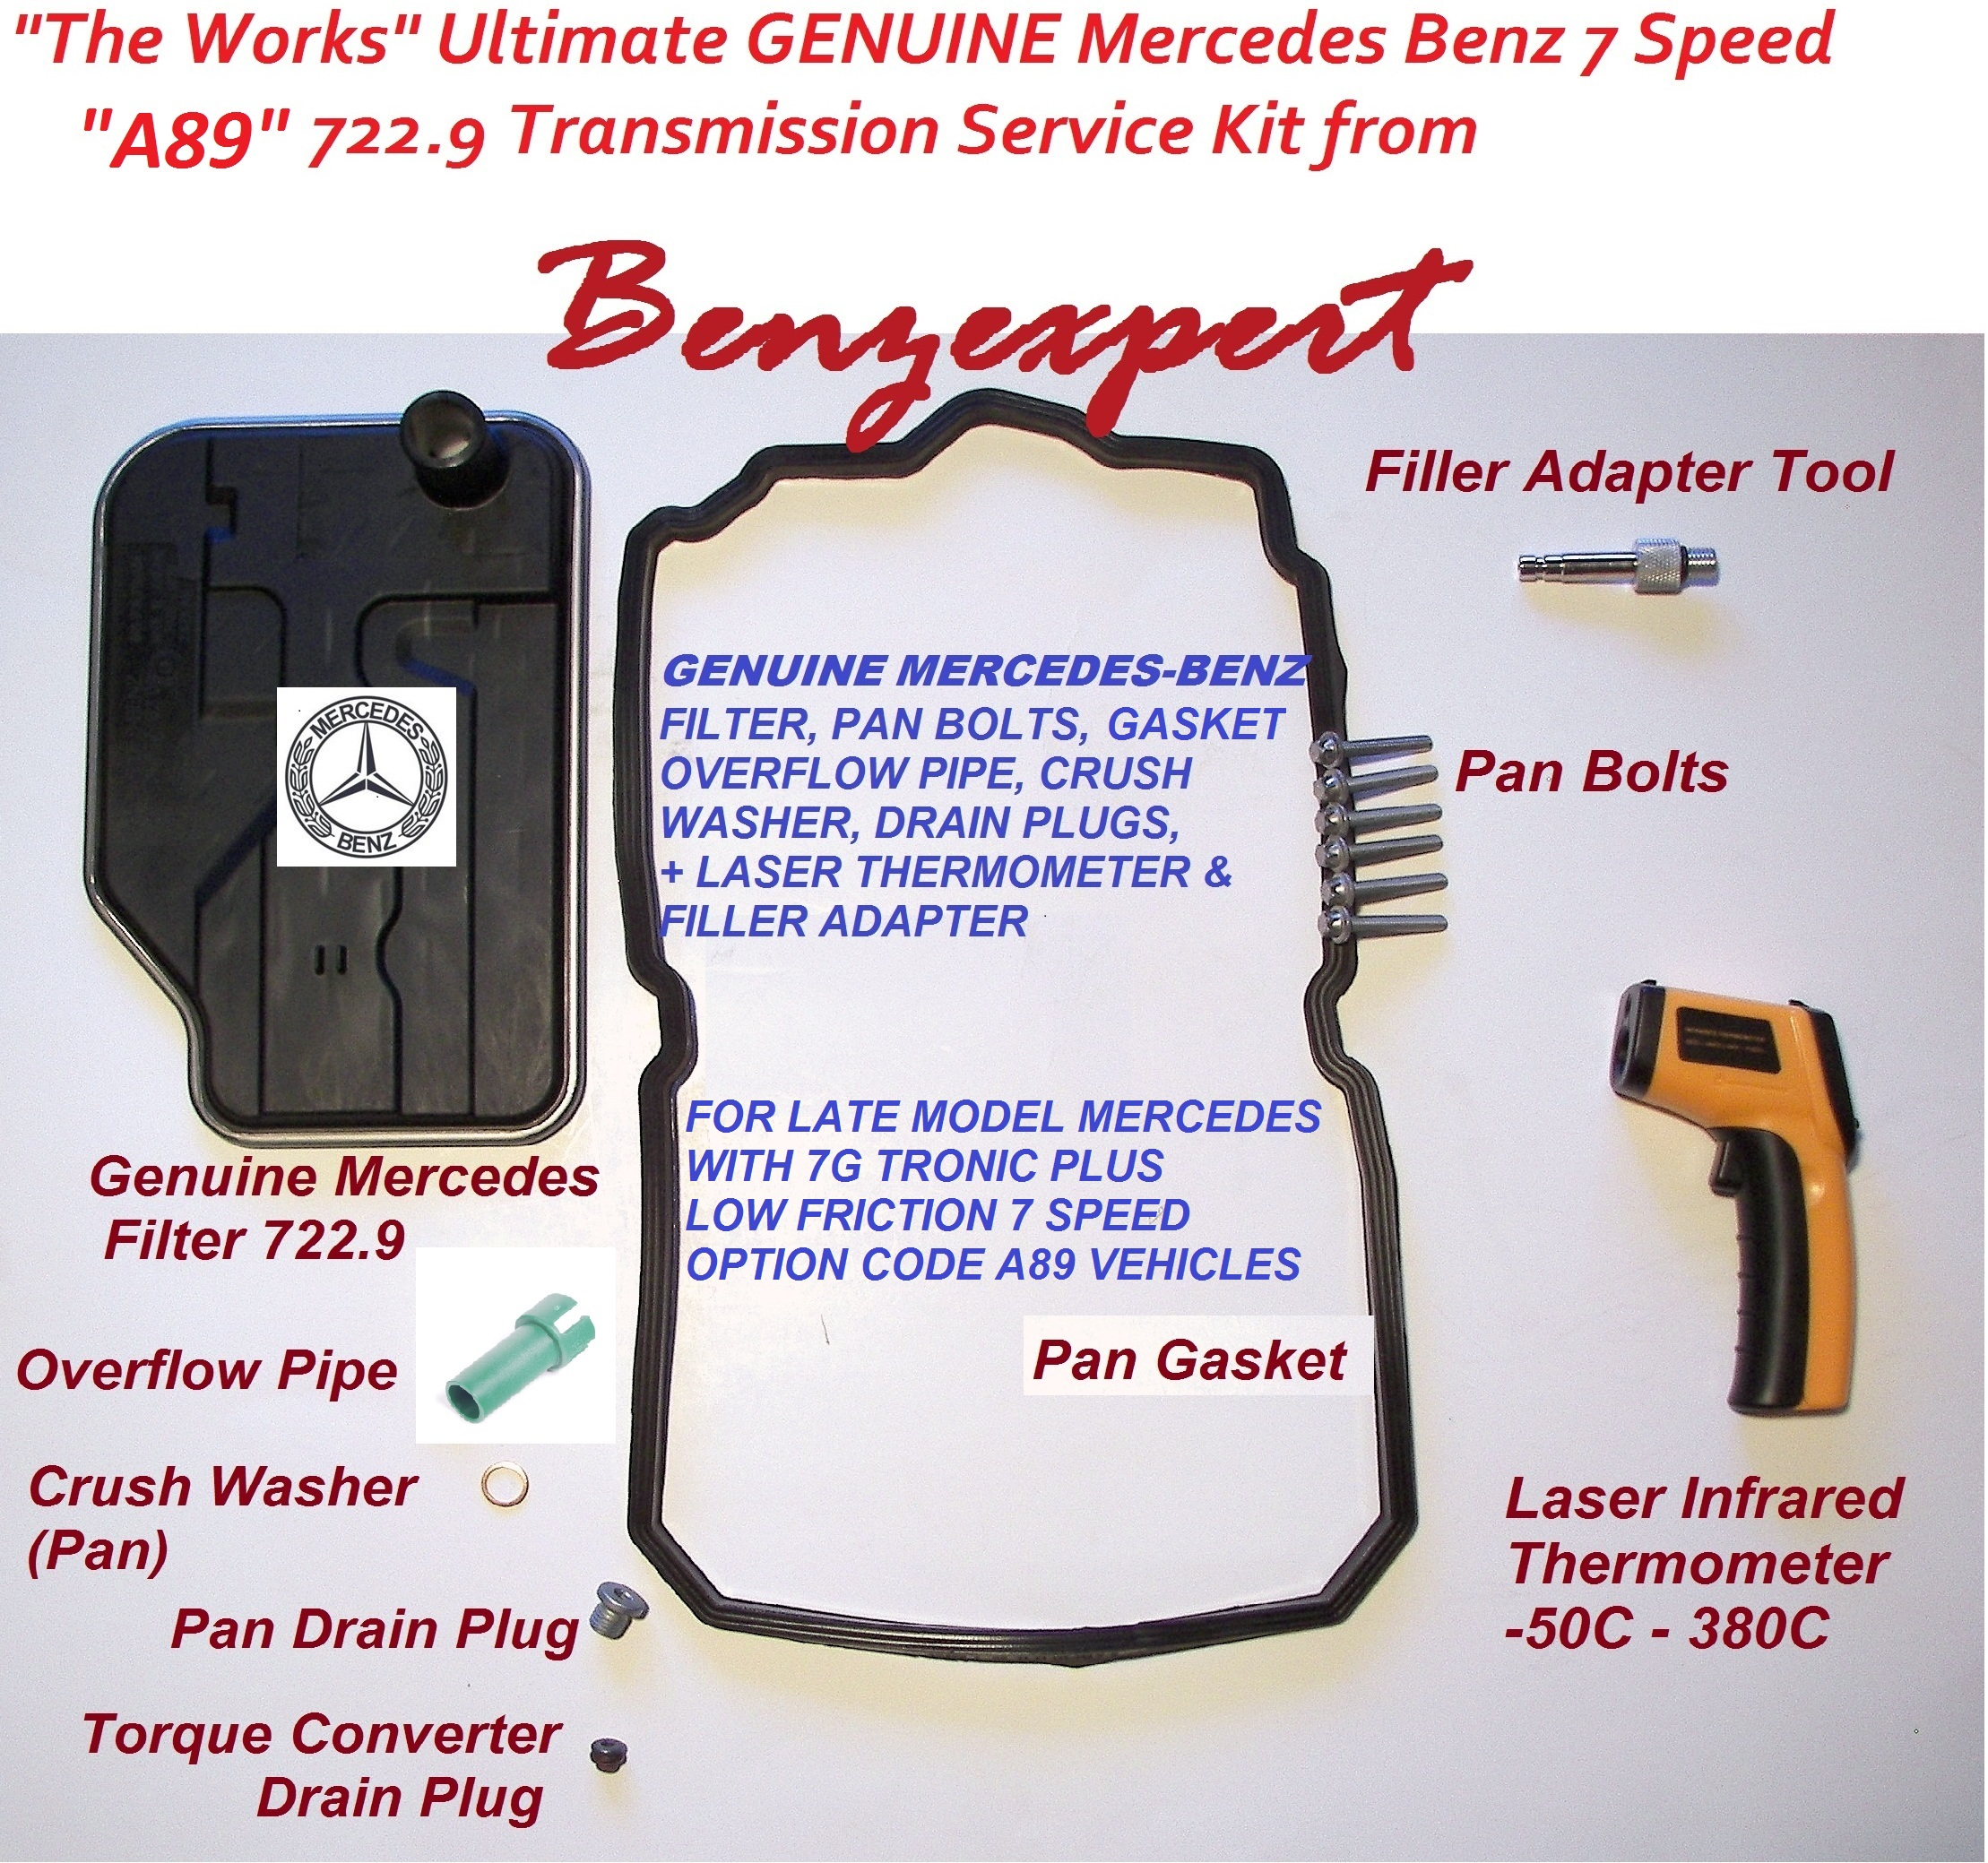 Mercedes A89 7 speed transmission service kit